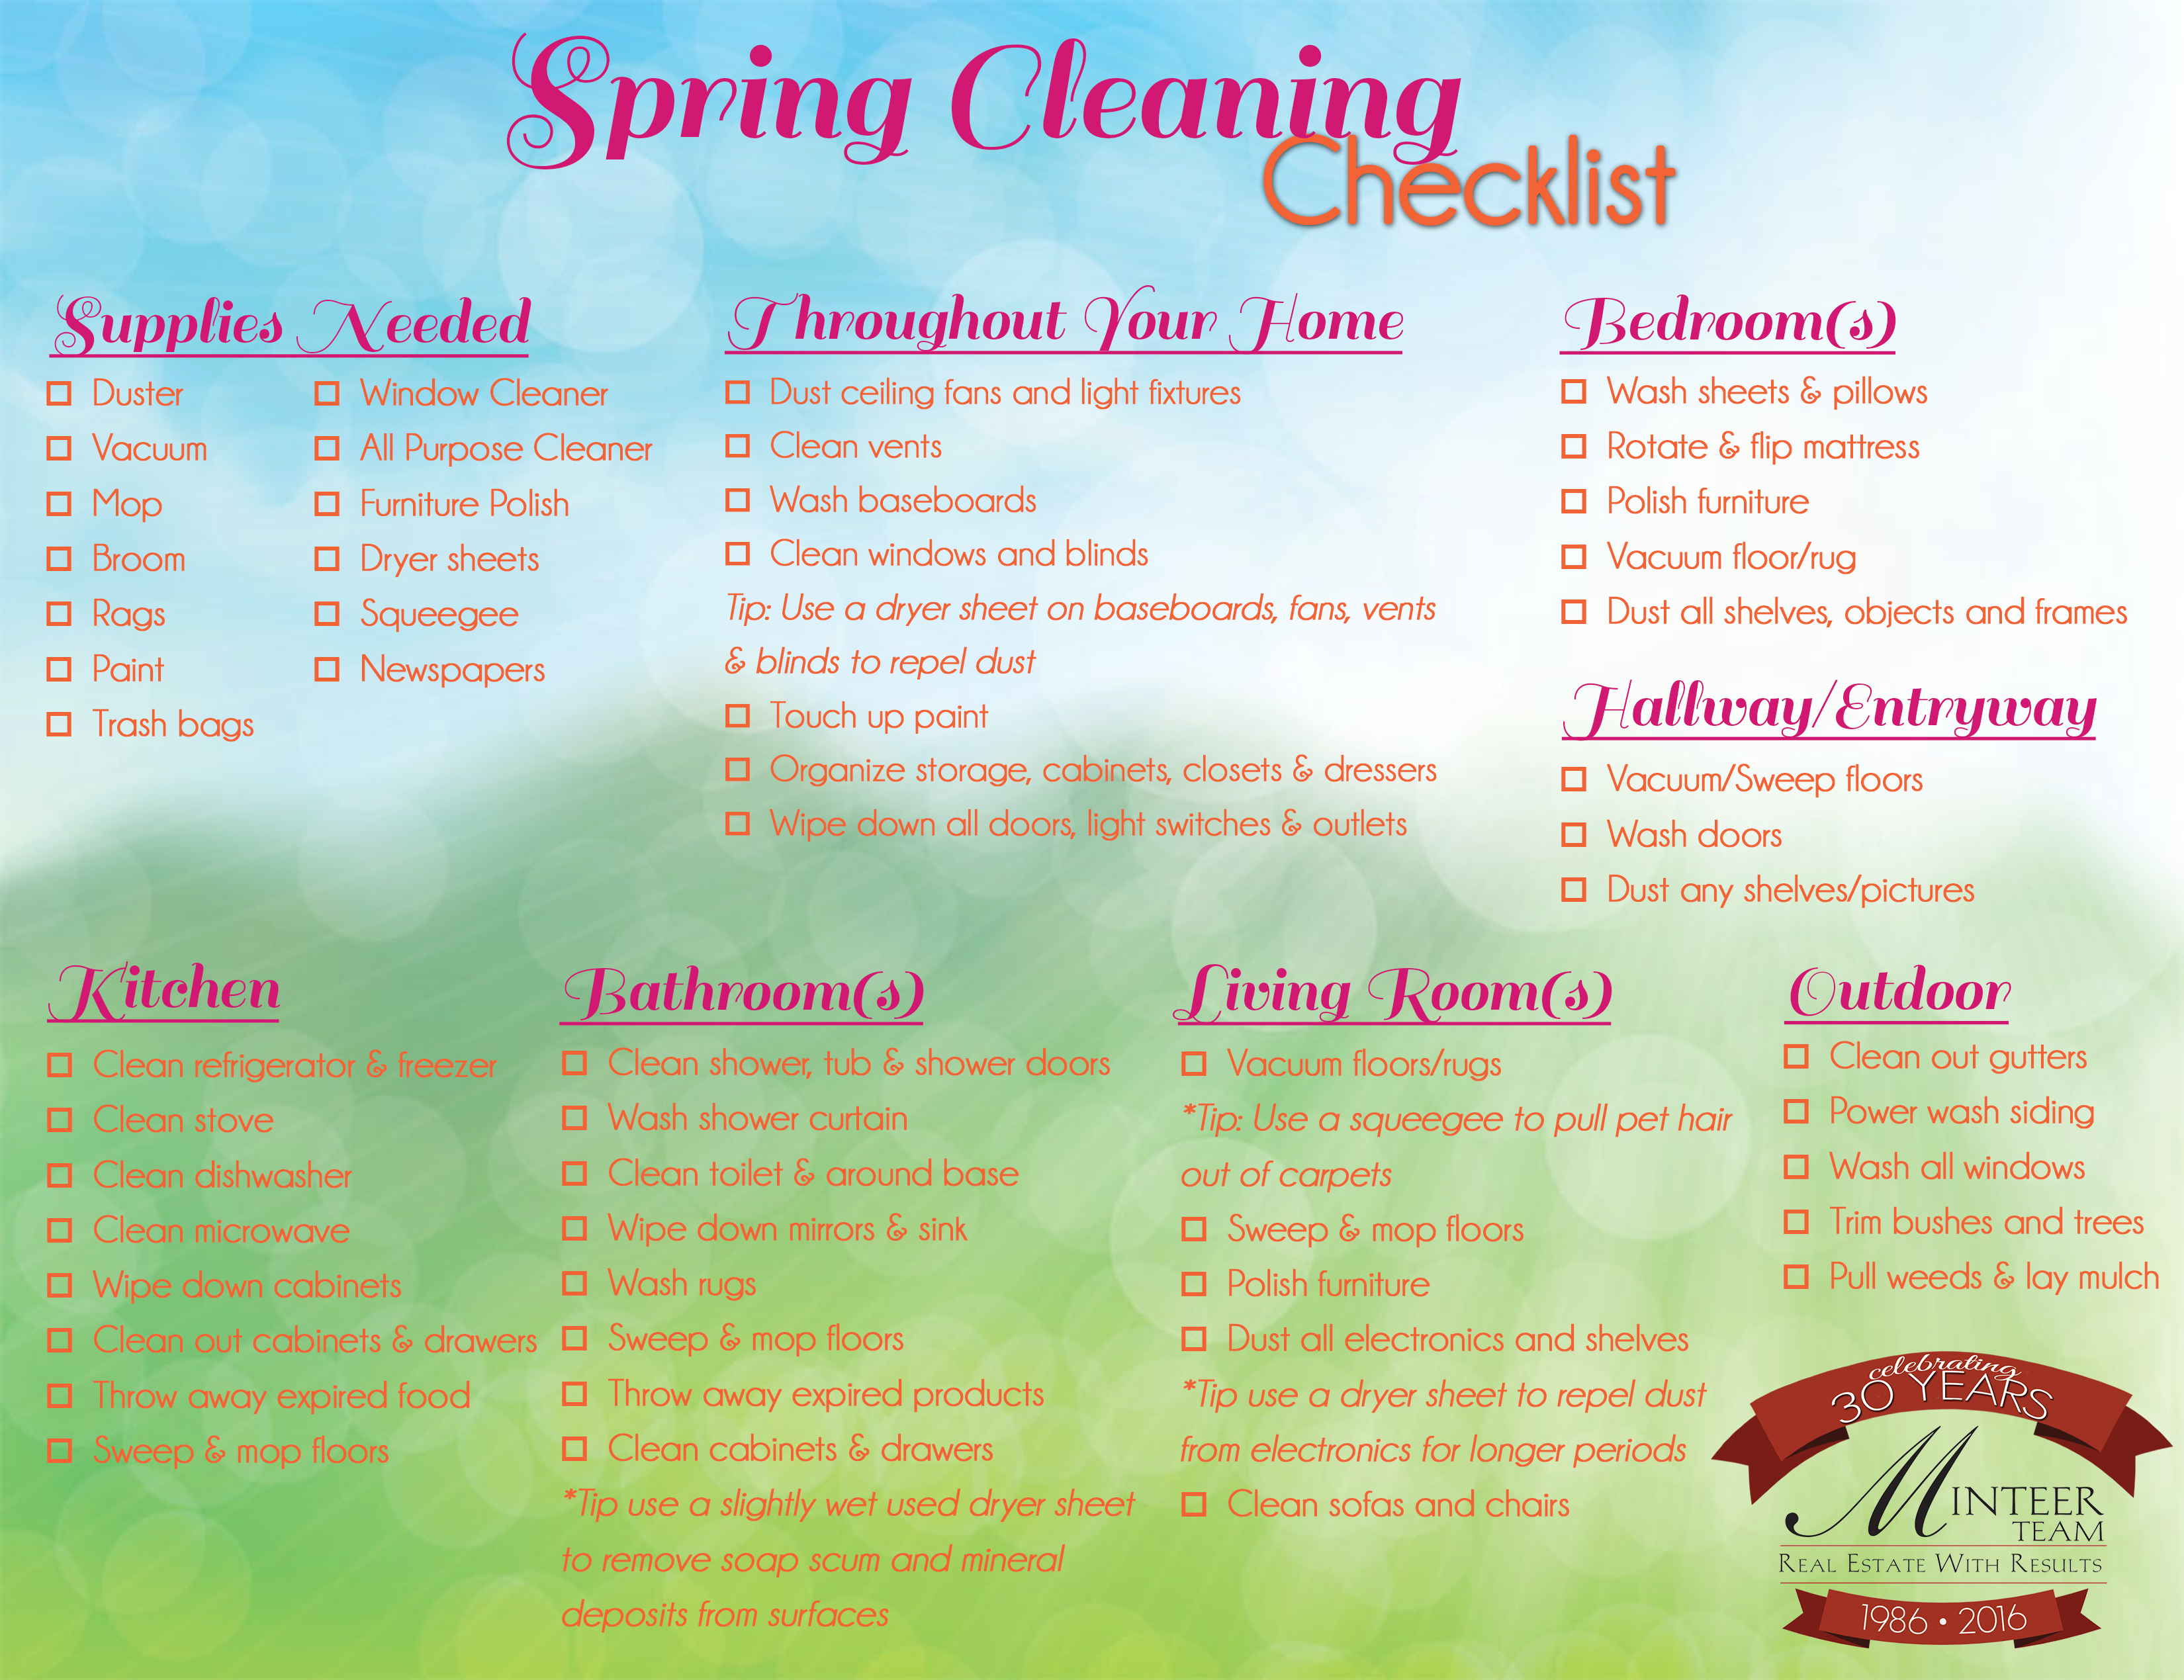 2016 Spring Cleaning Checklist Minteer Team Real Estate – Sample Spring Cleaning Checklist